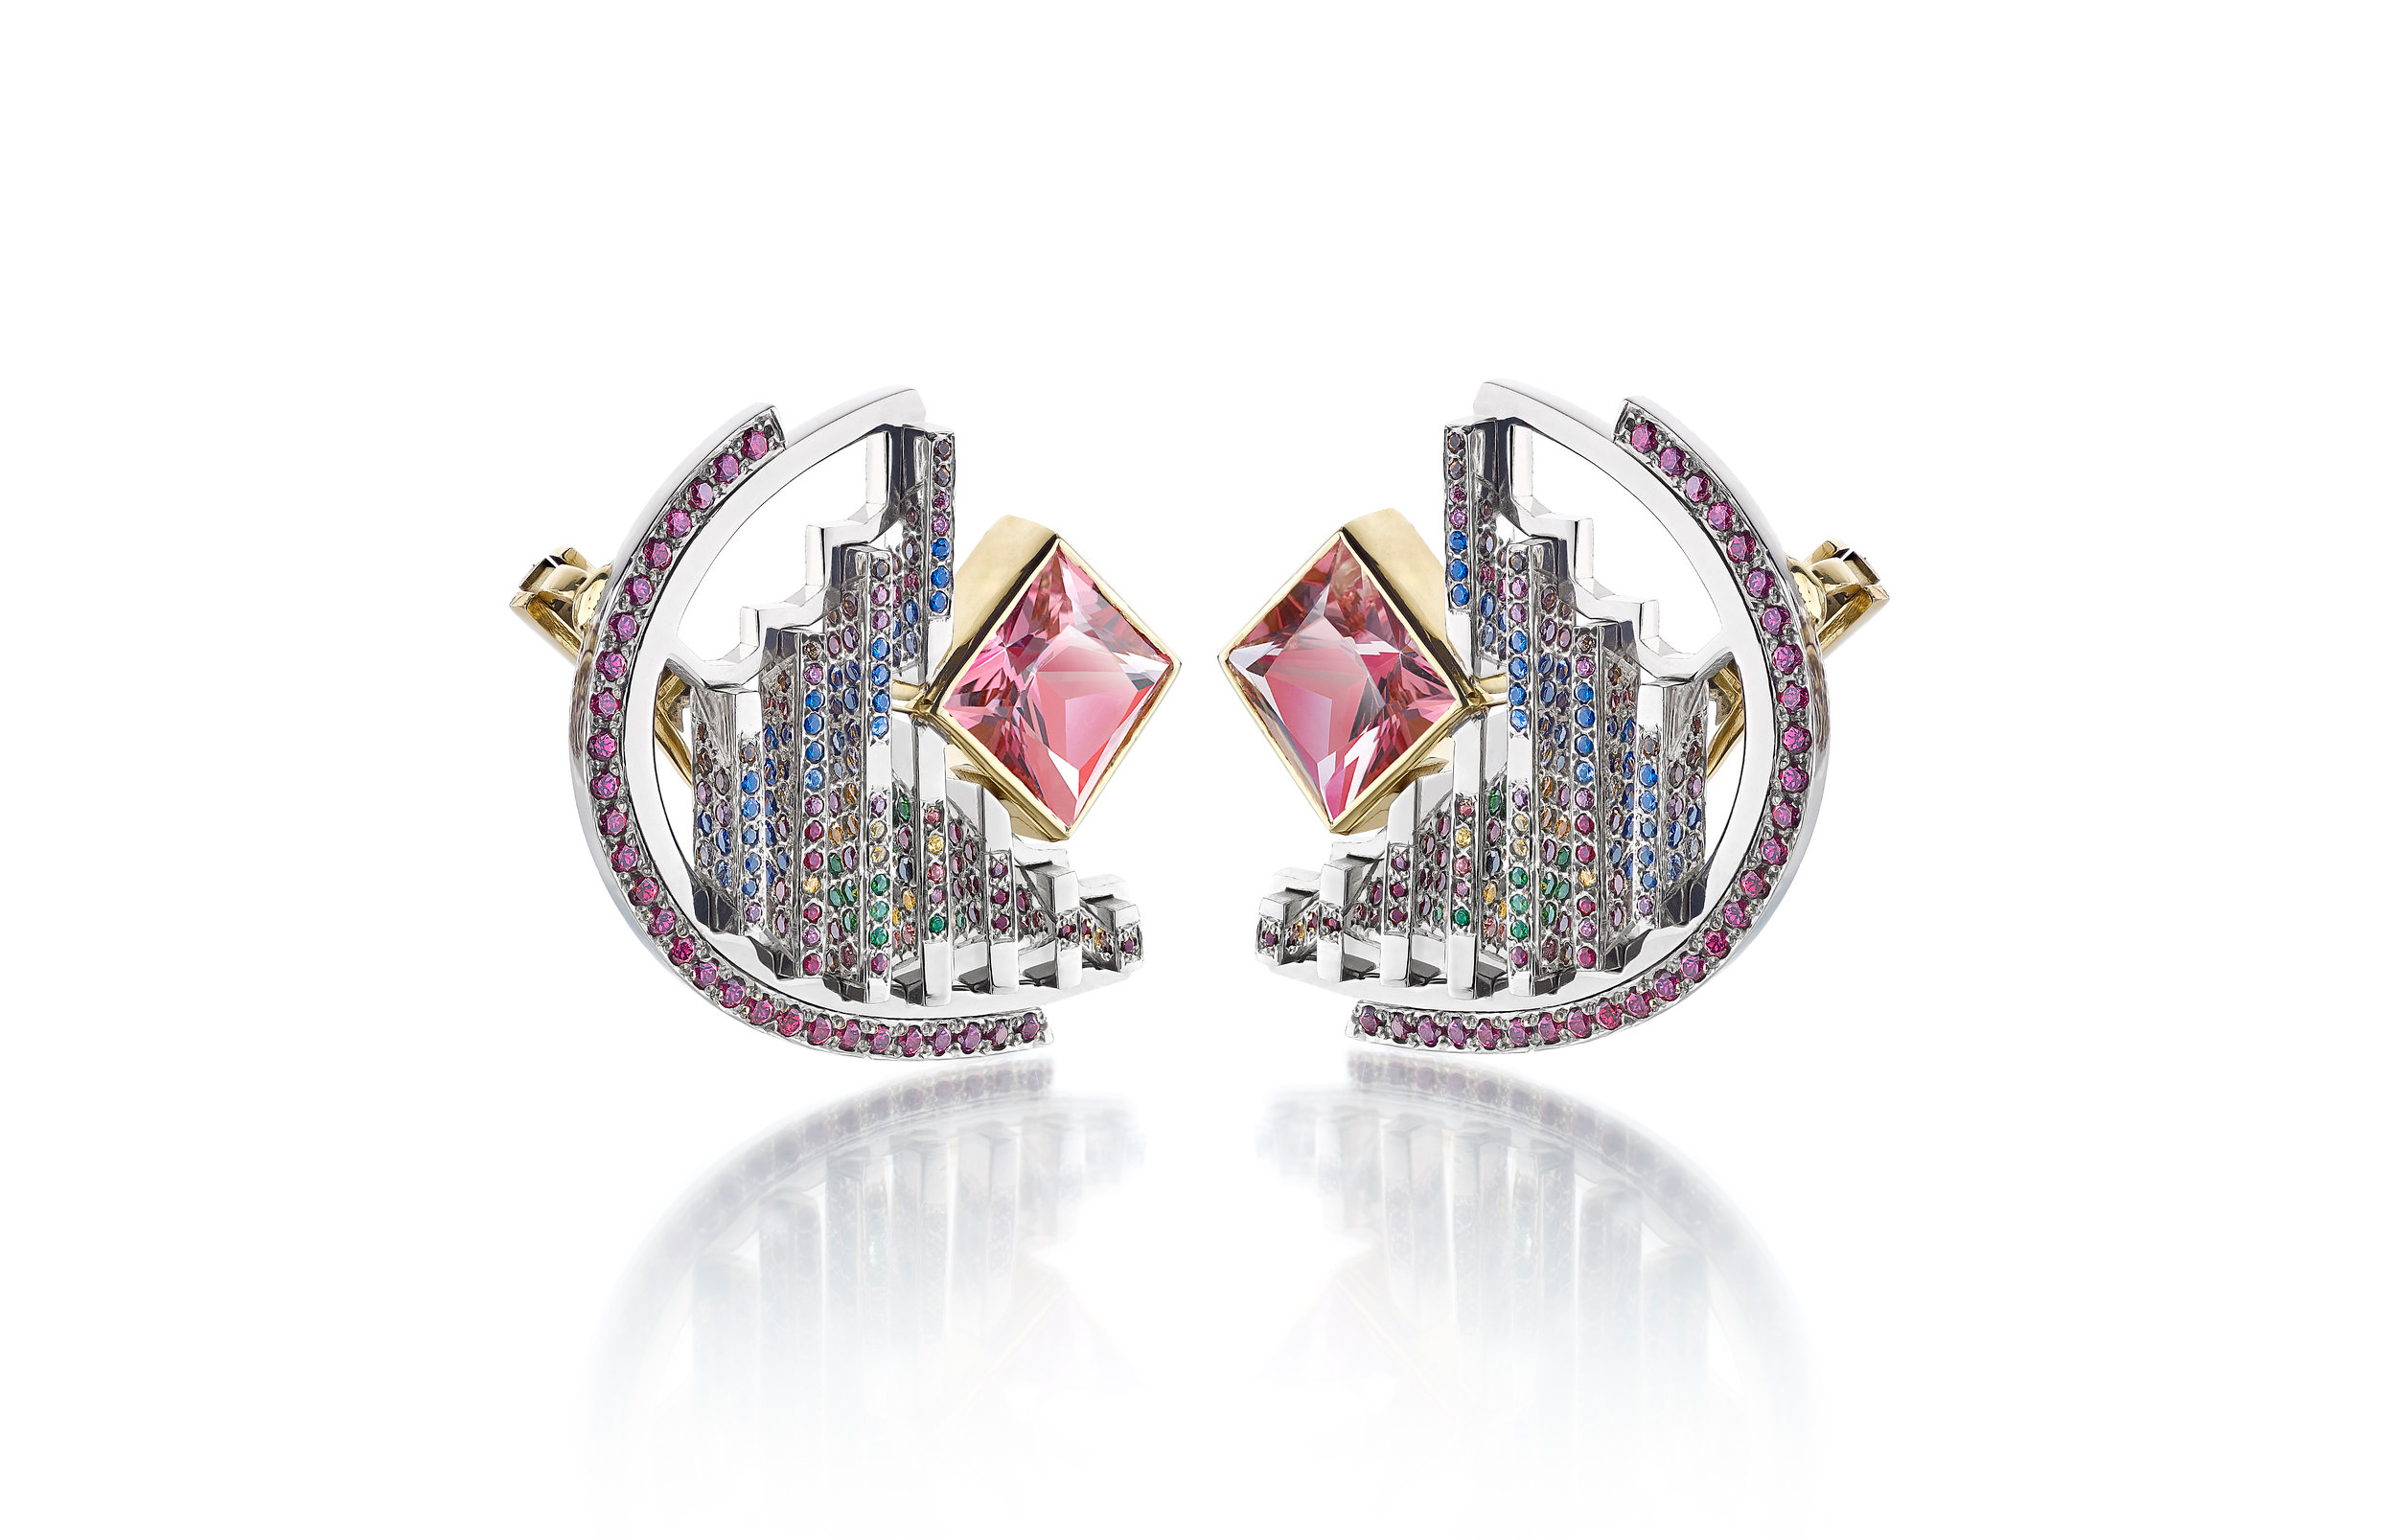 VICKY LEW LONDON thalurania & colombia earrings image courtesy of designer